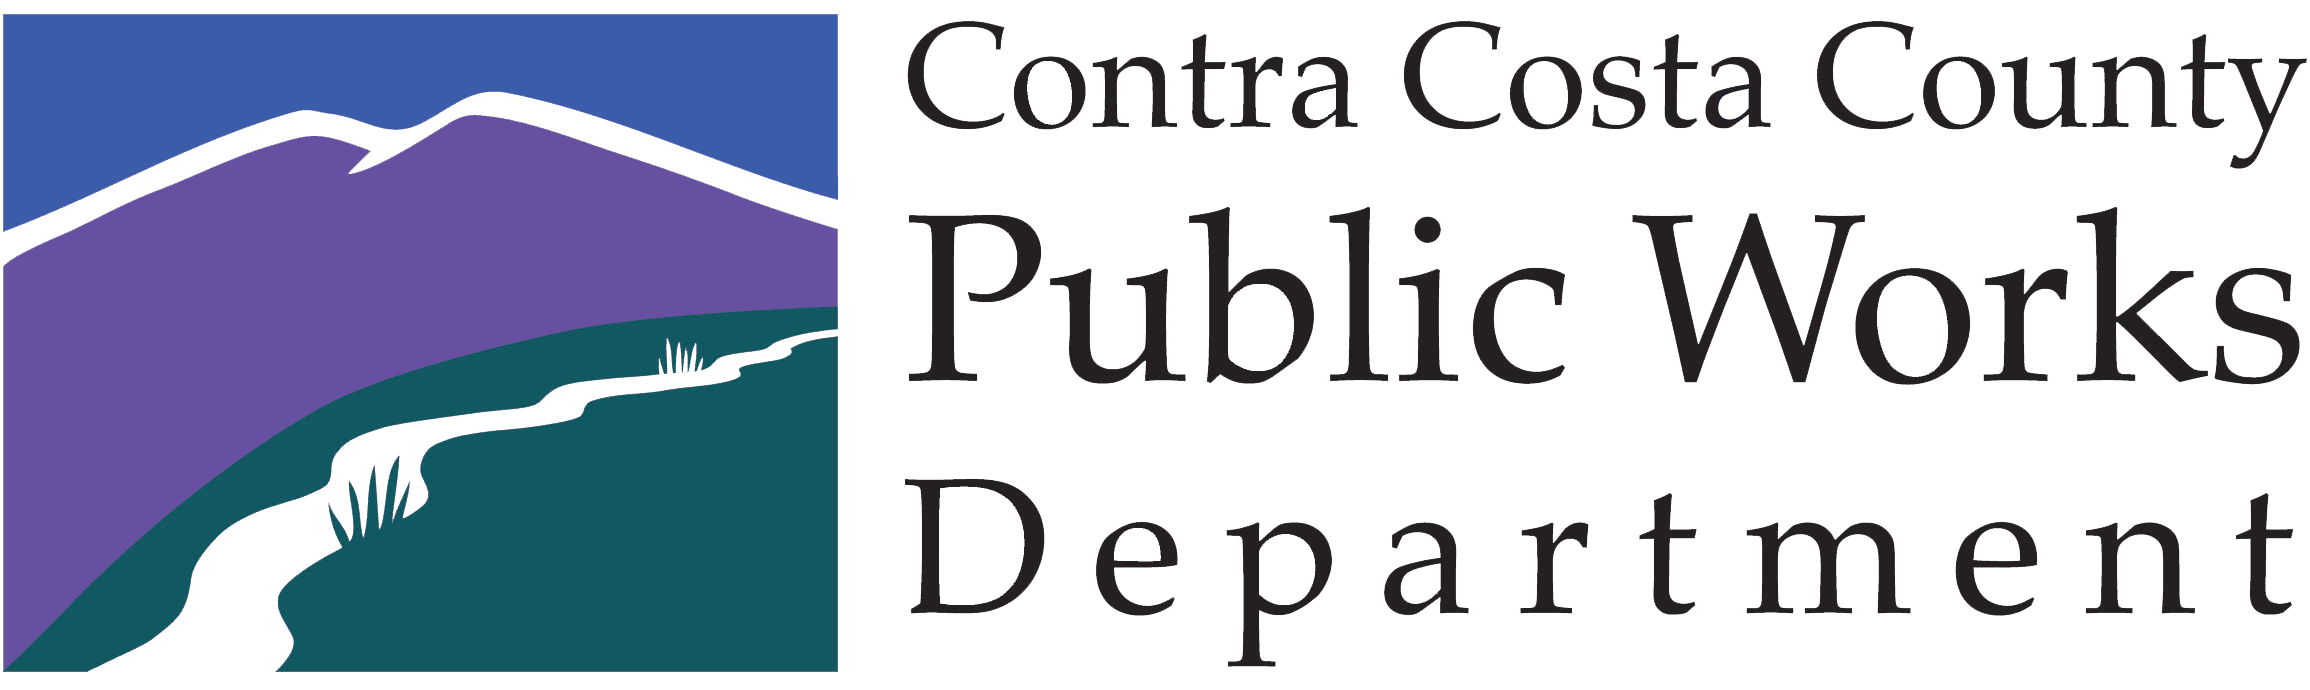 Contra Costa County Public Works Department